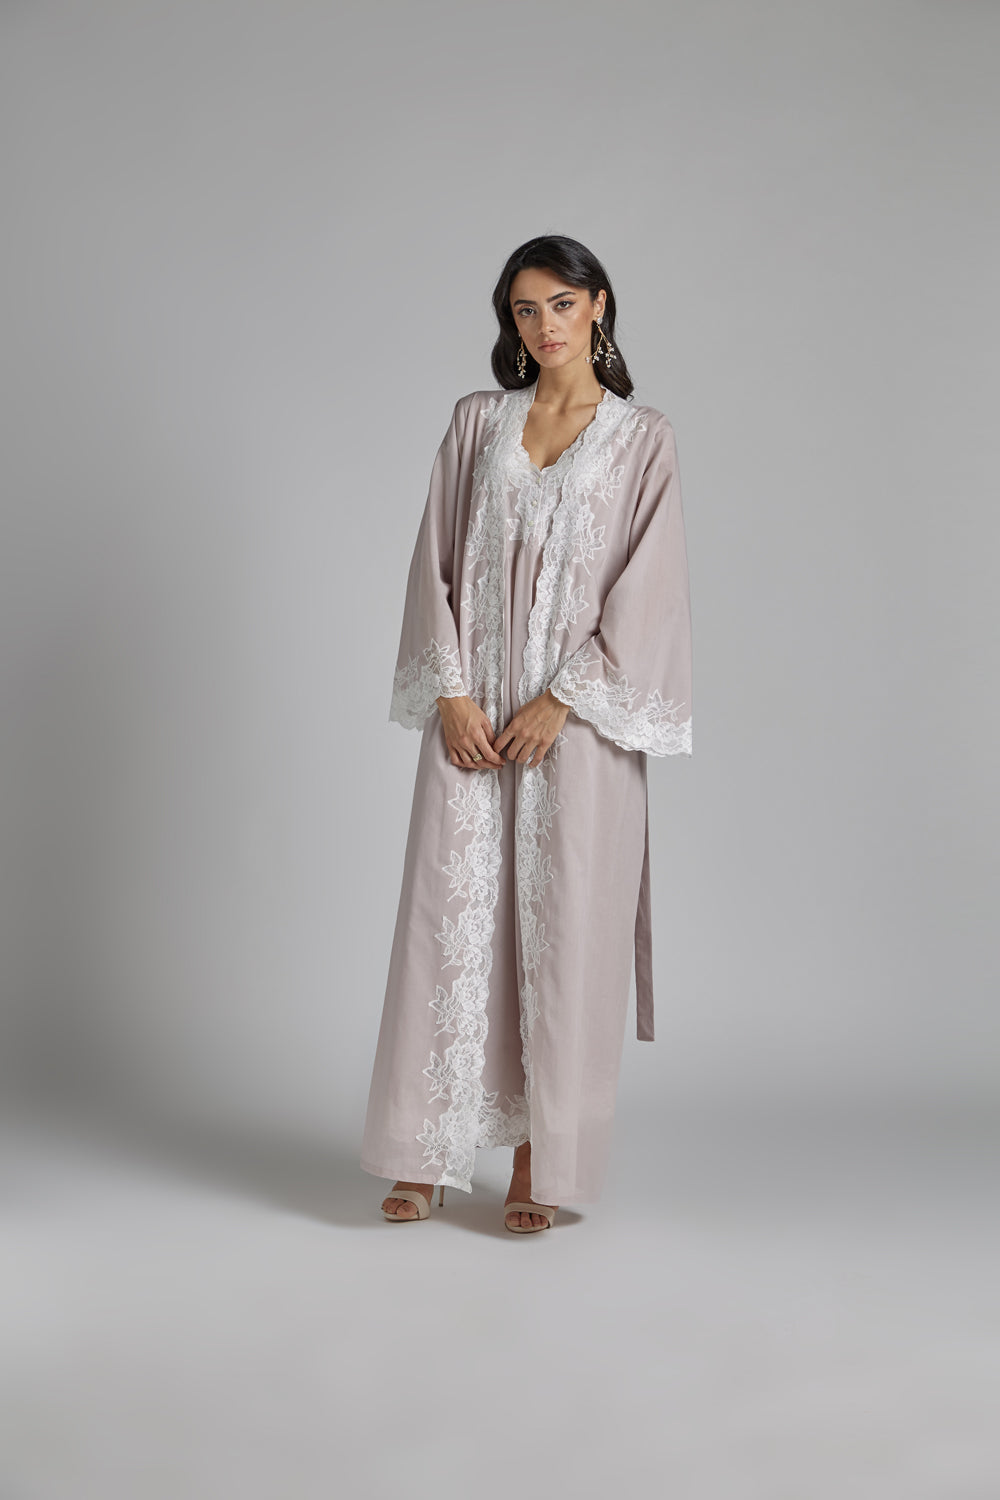 Cotton Vual Powder Robe Set - Reina